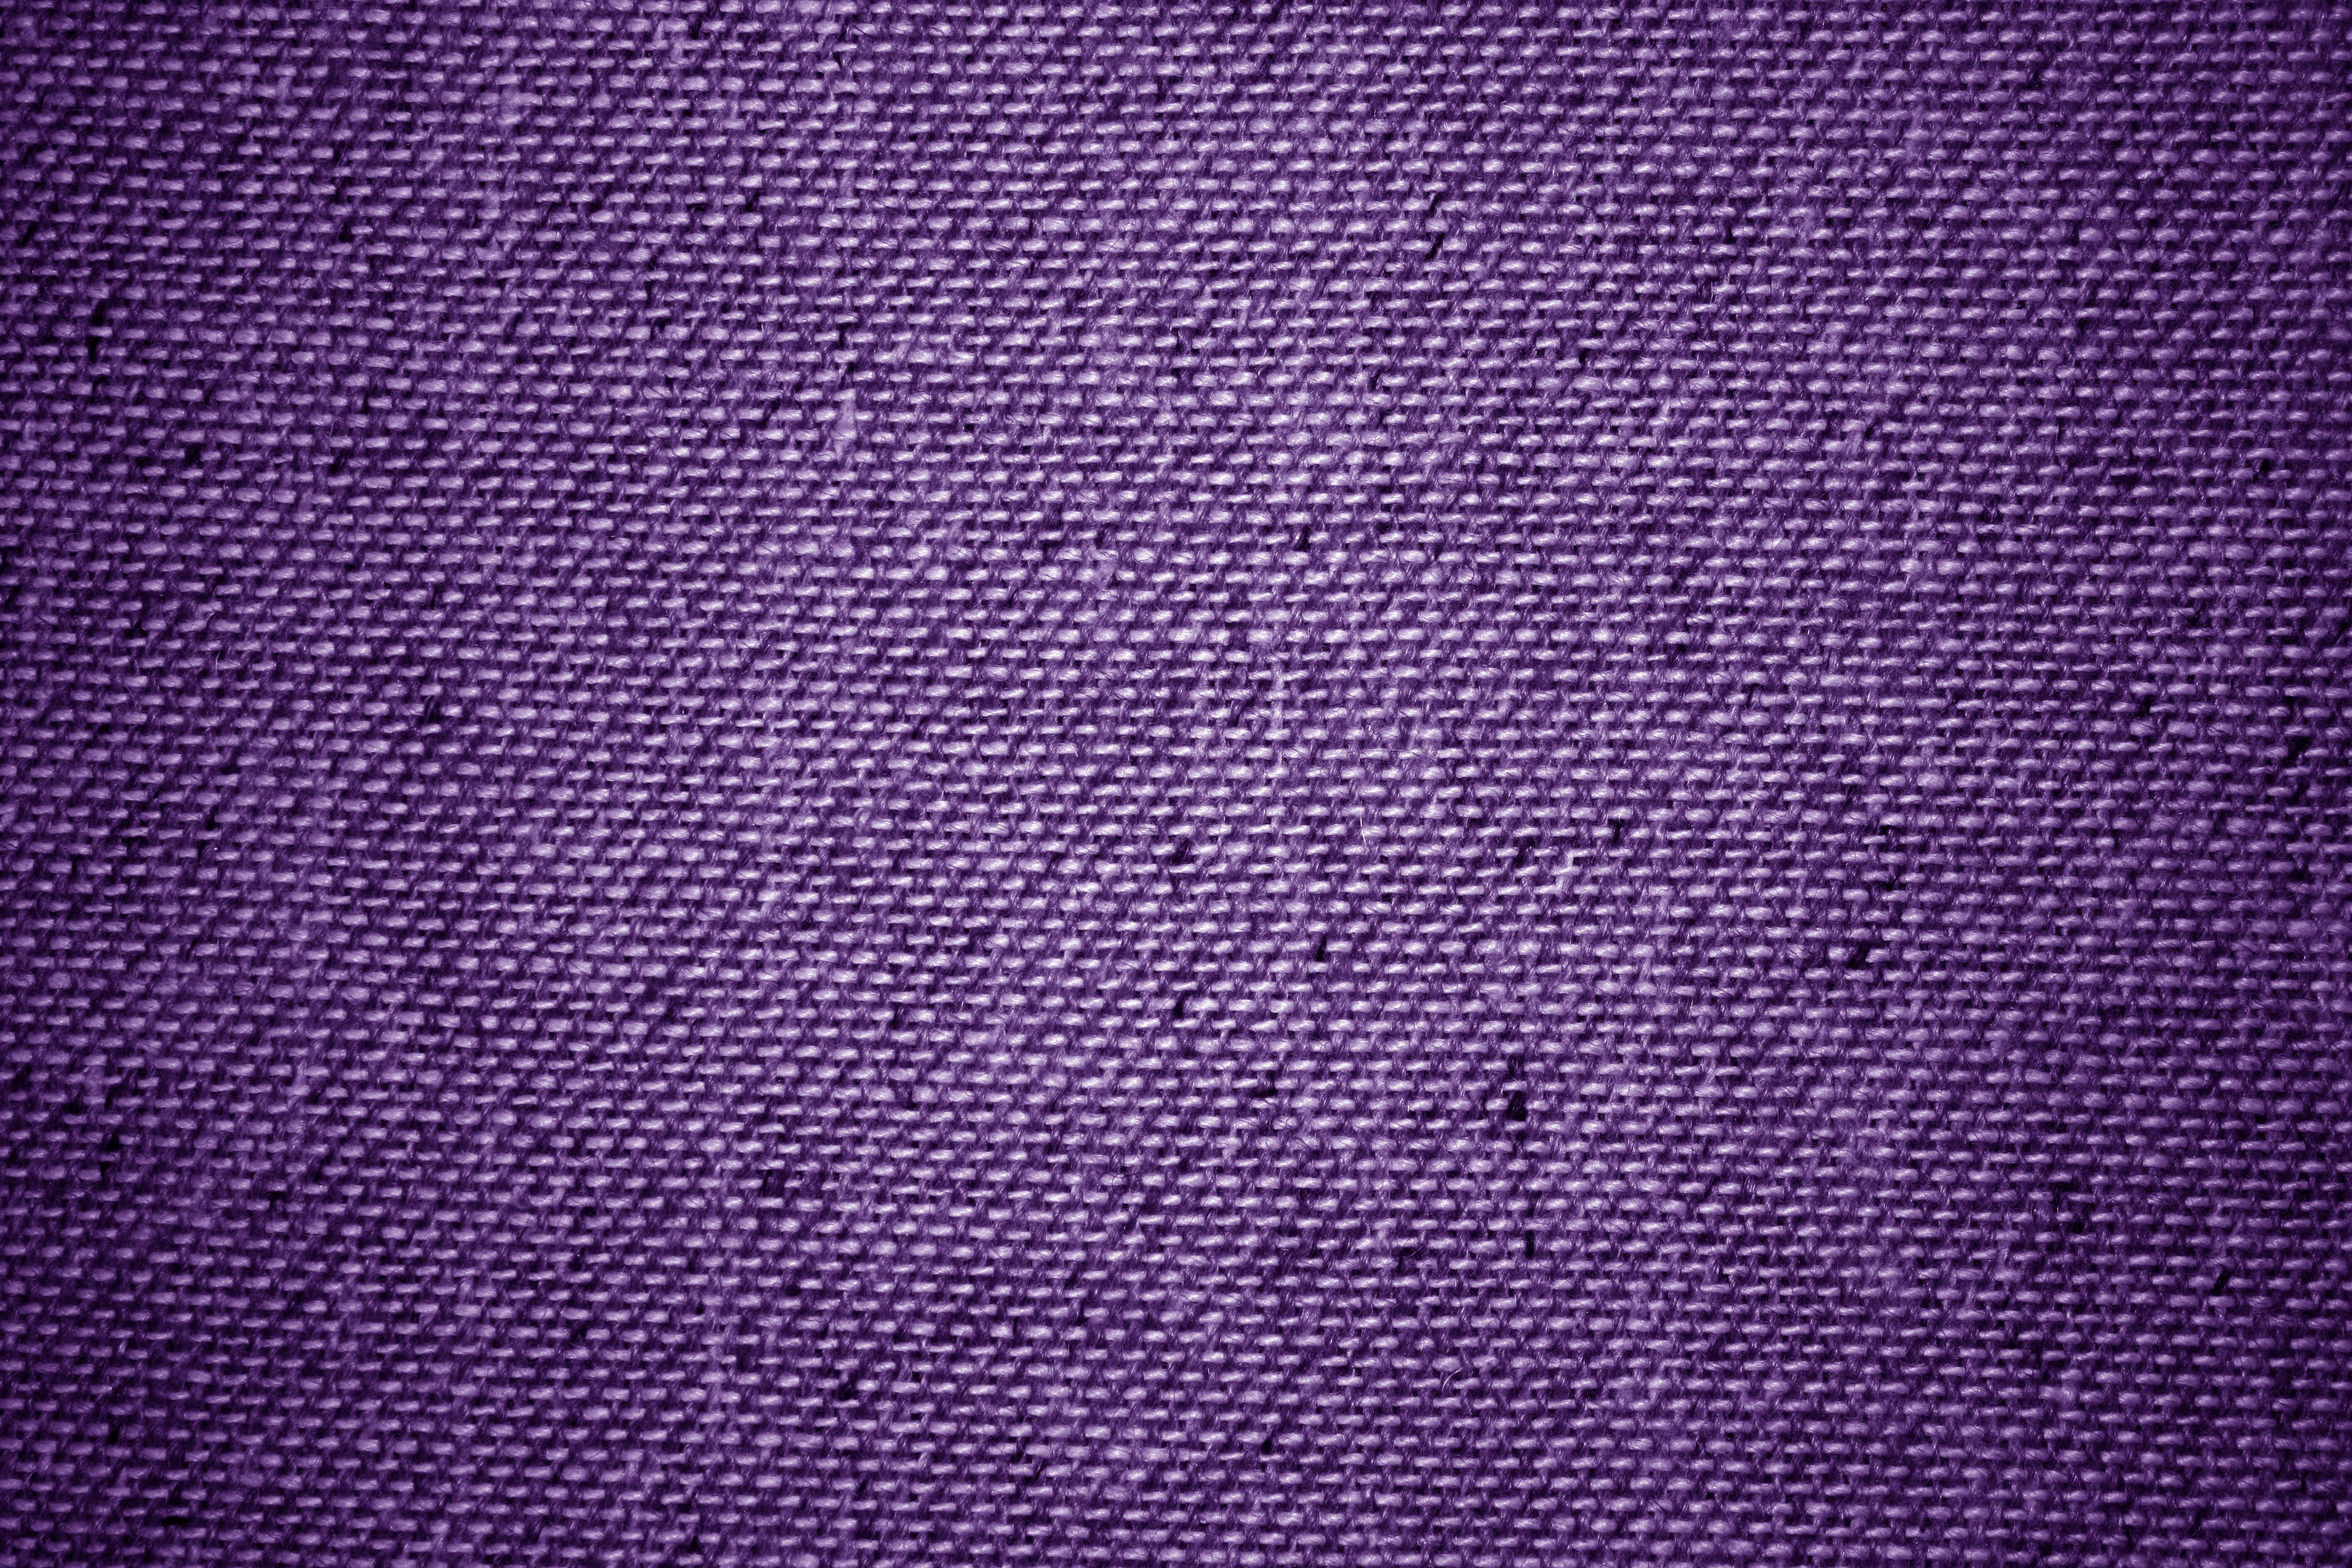 Free Fabric Textures Purple Upholstery Fabric Close Up